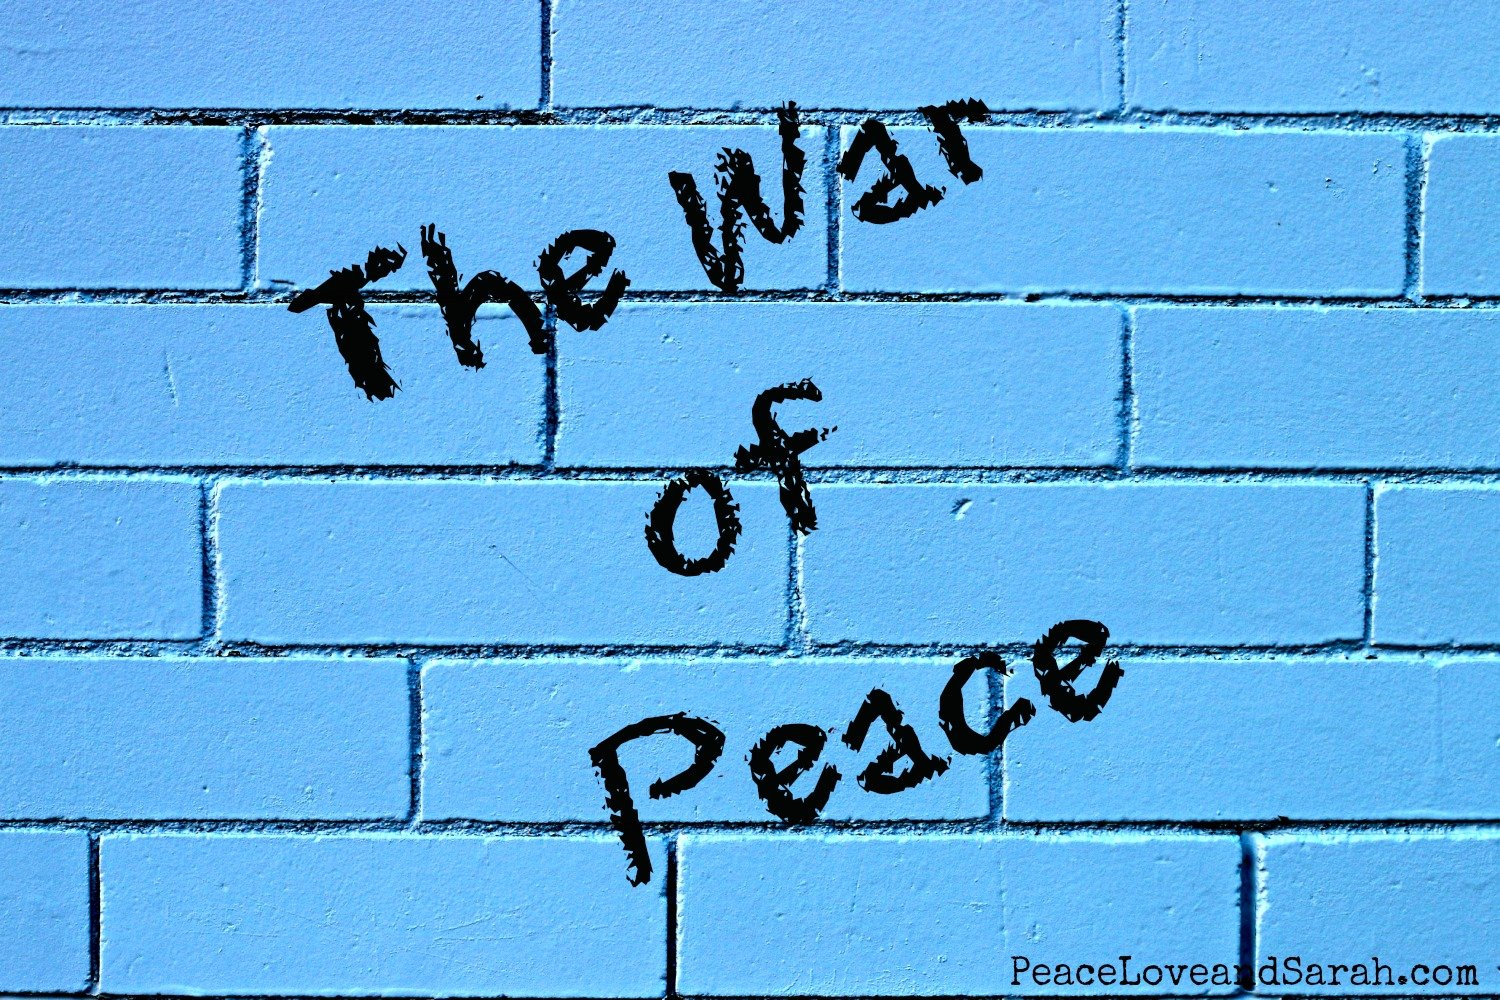 30 Days to Peace #peace